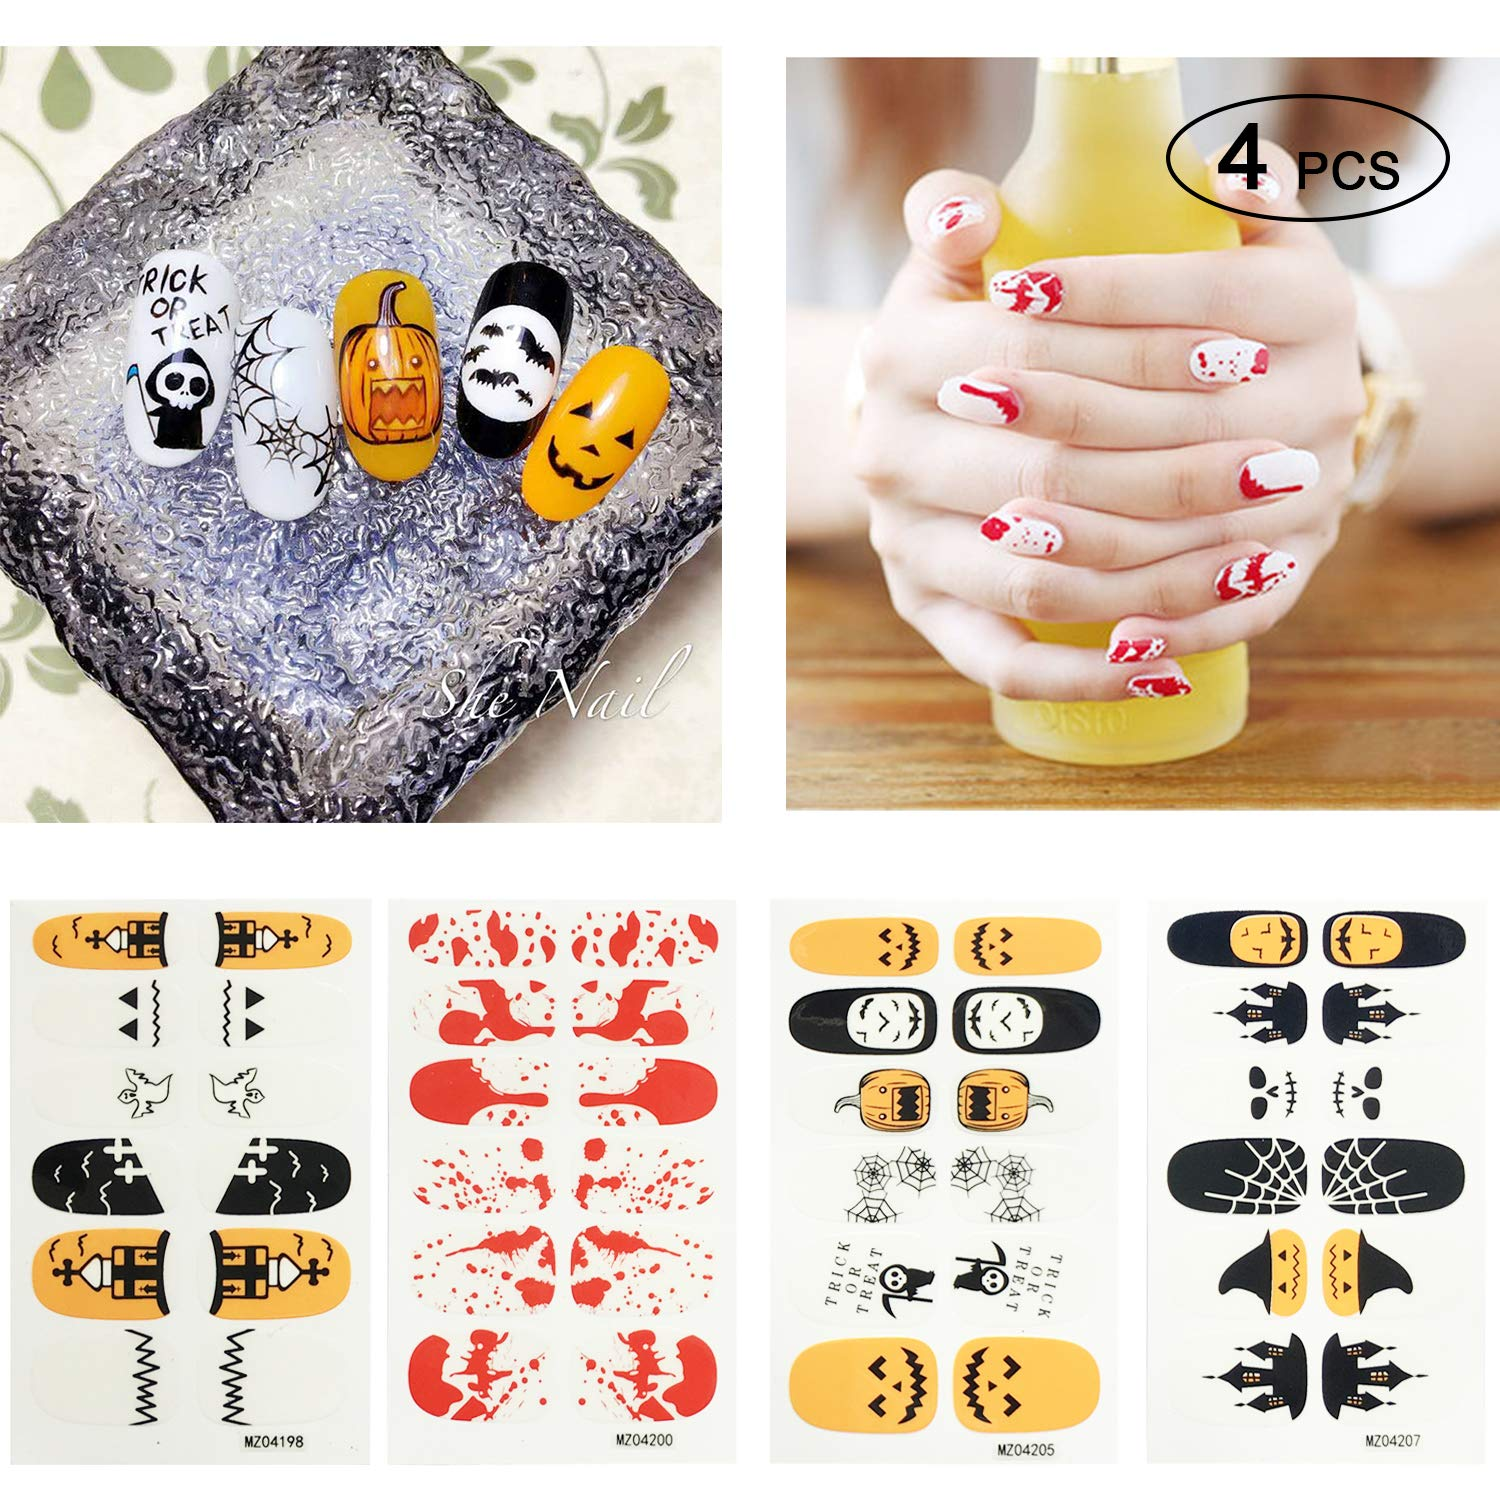 Halloween Nail Decals, Nail Art Stickers, Holiday Nail Wrap Stickers Great Variety, 4 pack nail art decals stickers, halloween decoration stickers Topgalaxy.Z